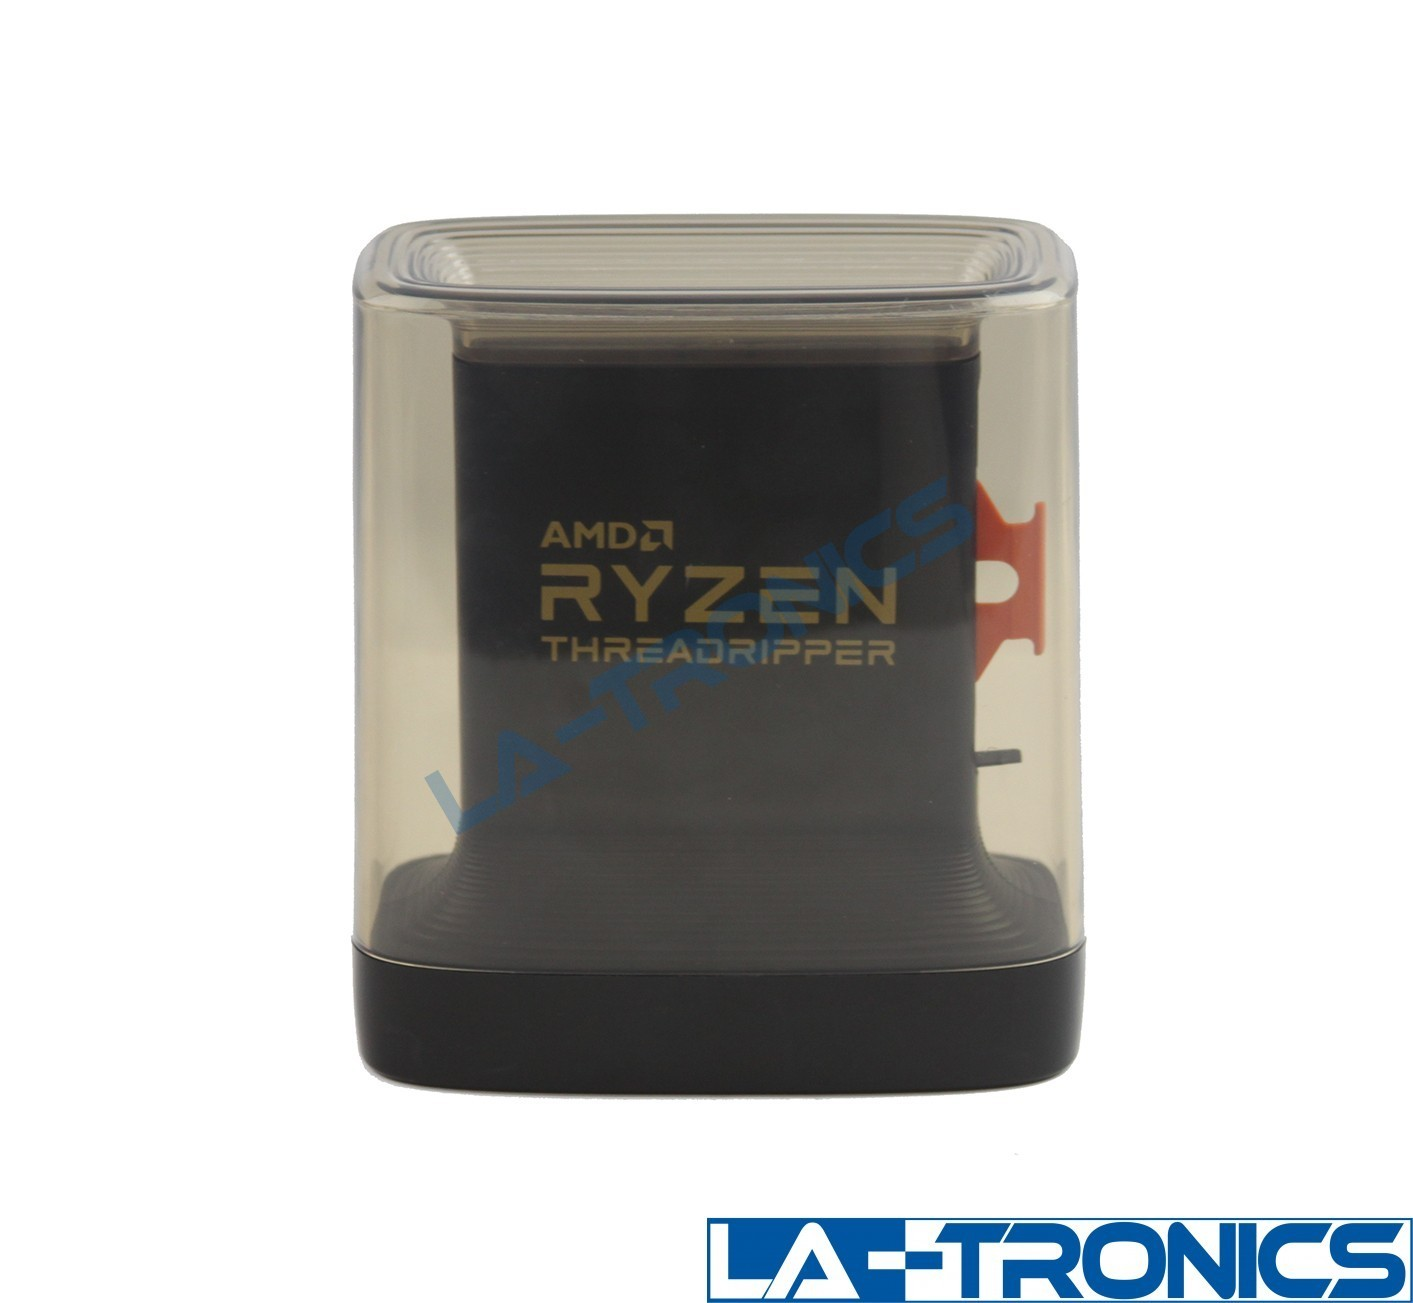 NEW AMD YD190XA8AEWOF Ryzen Threadripper 1900X 3.80Ghz 180W 8-Core CPU Processor